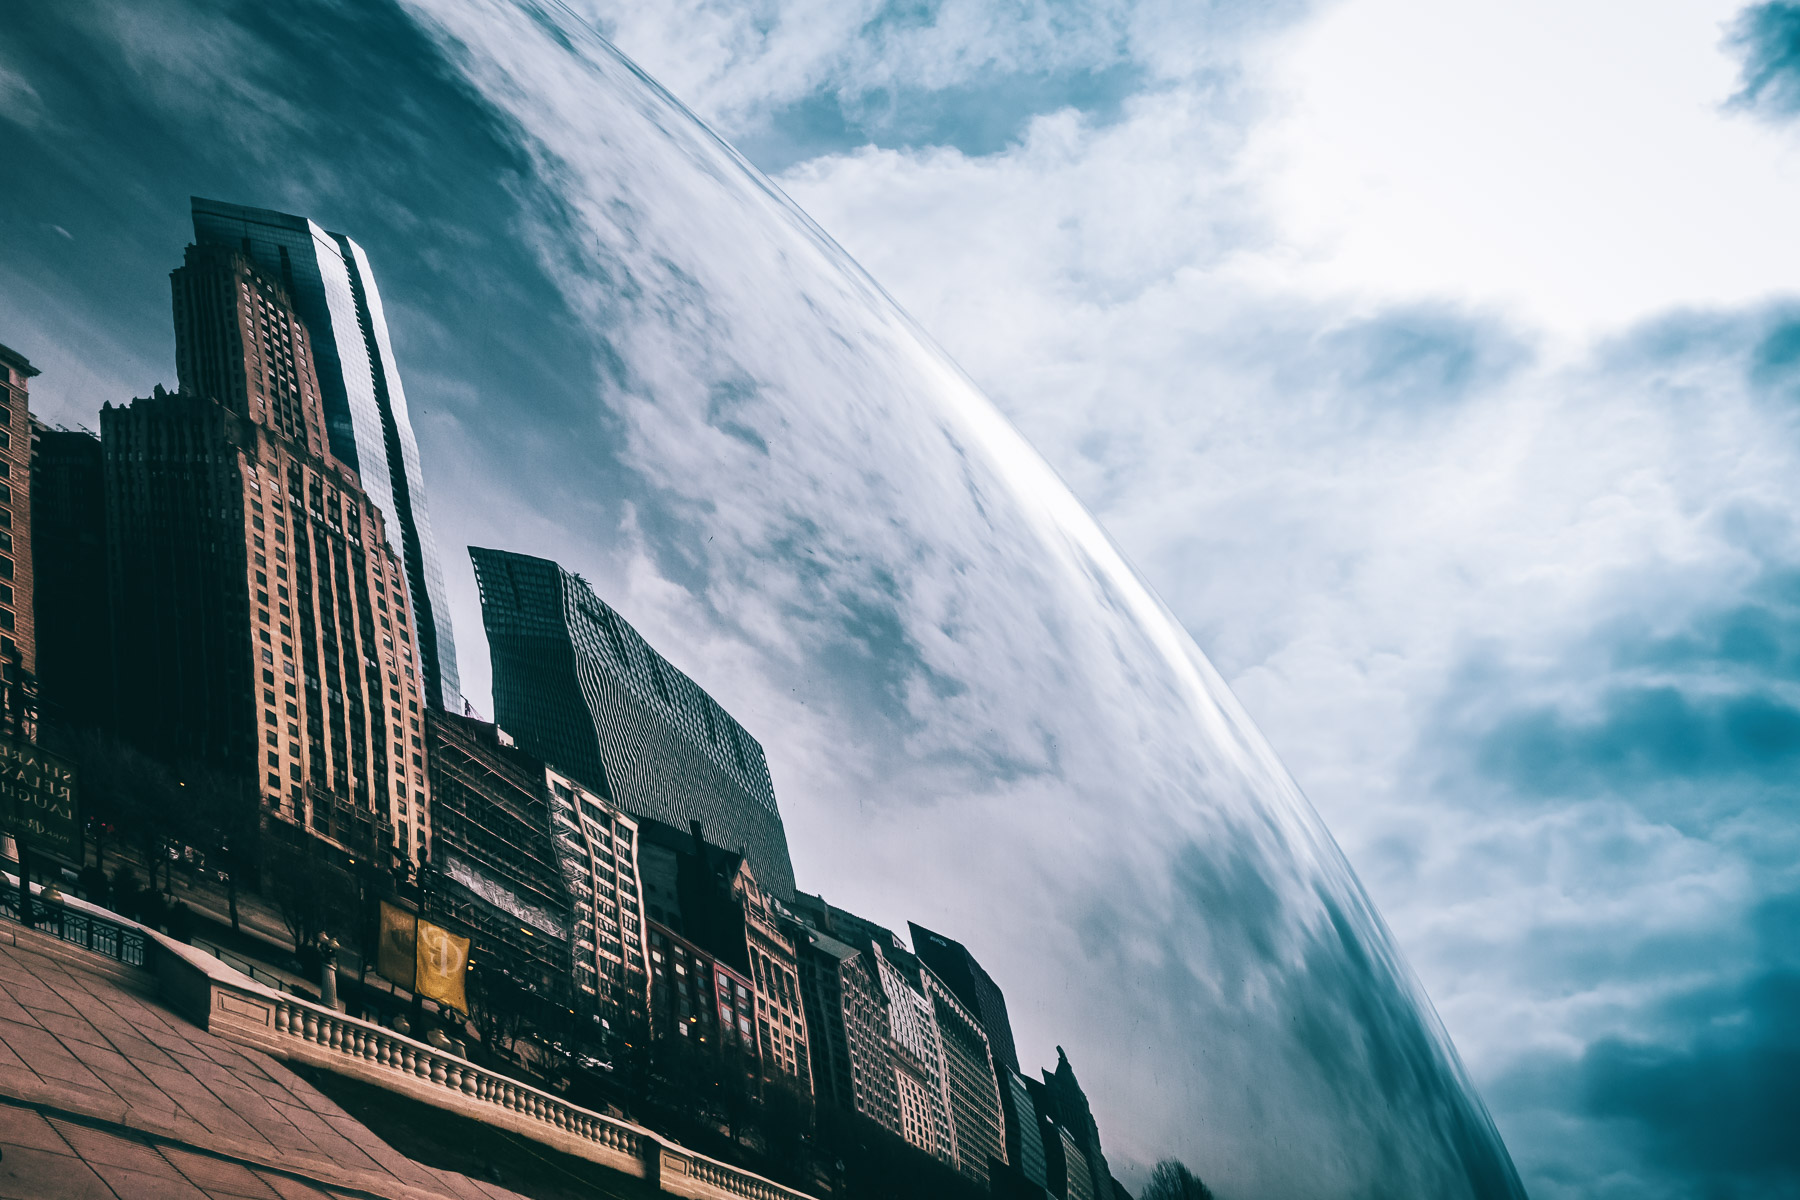 """Anish Kapoor'sCloud Gate, colloquially known as """"The Bean"""", bends and reflects nearby buildings at Millennium Park, Chicago."""